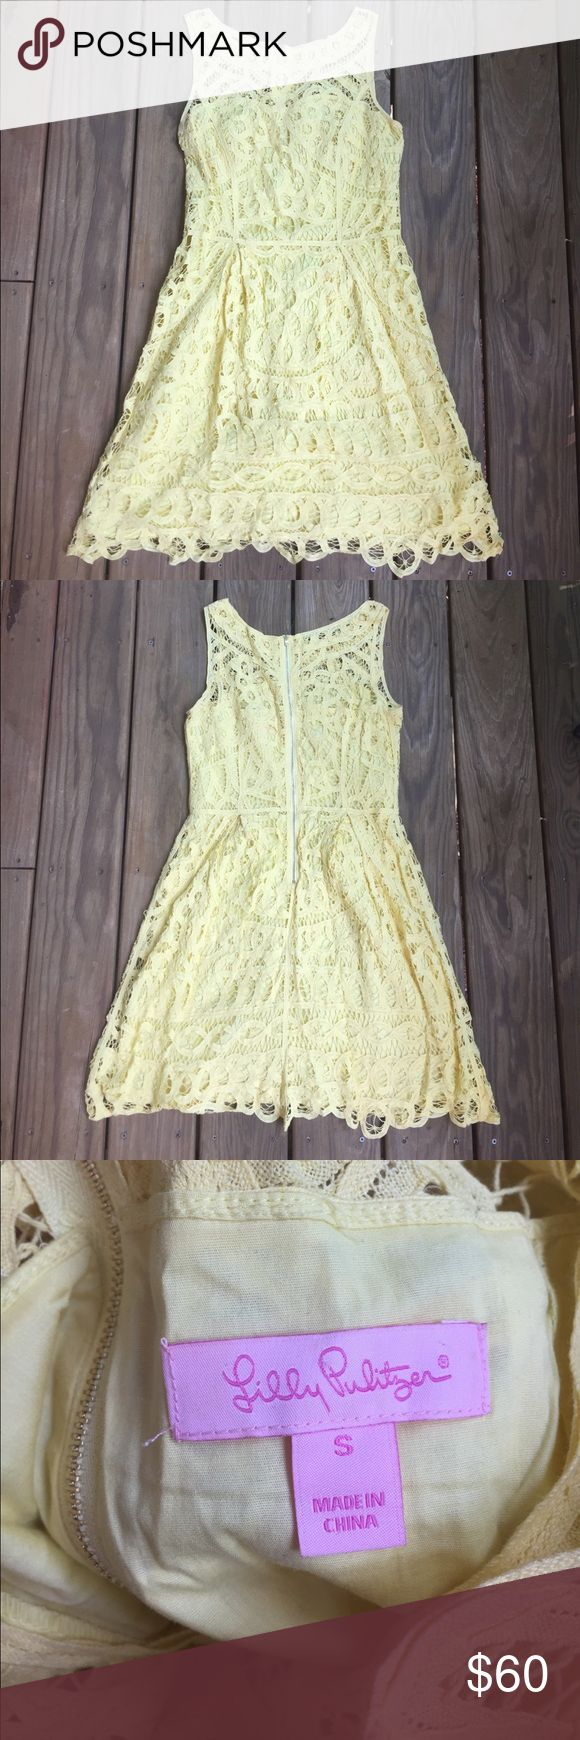 Lilly Pulitzer Yellow Lace Dress Gorgeous Lilly Pulitzer yellow dress. Has a cool lace over lay and a solid yellow lining. Size Small. Perfect for recruitment or an end of summer party. Lilly Pulitzer Dresses Midi